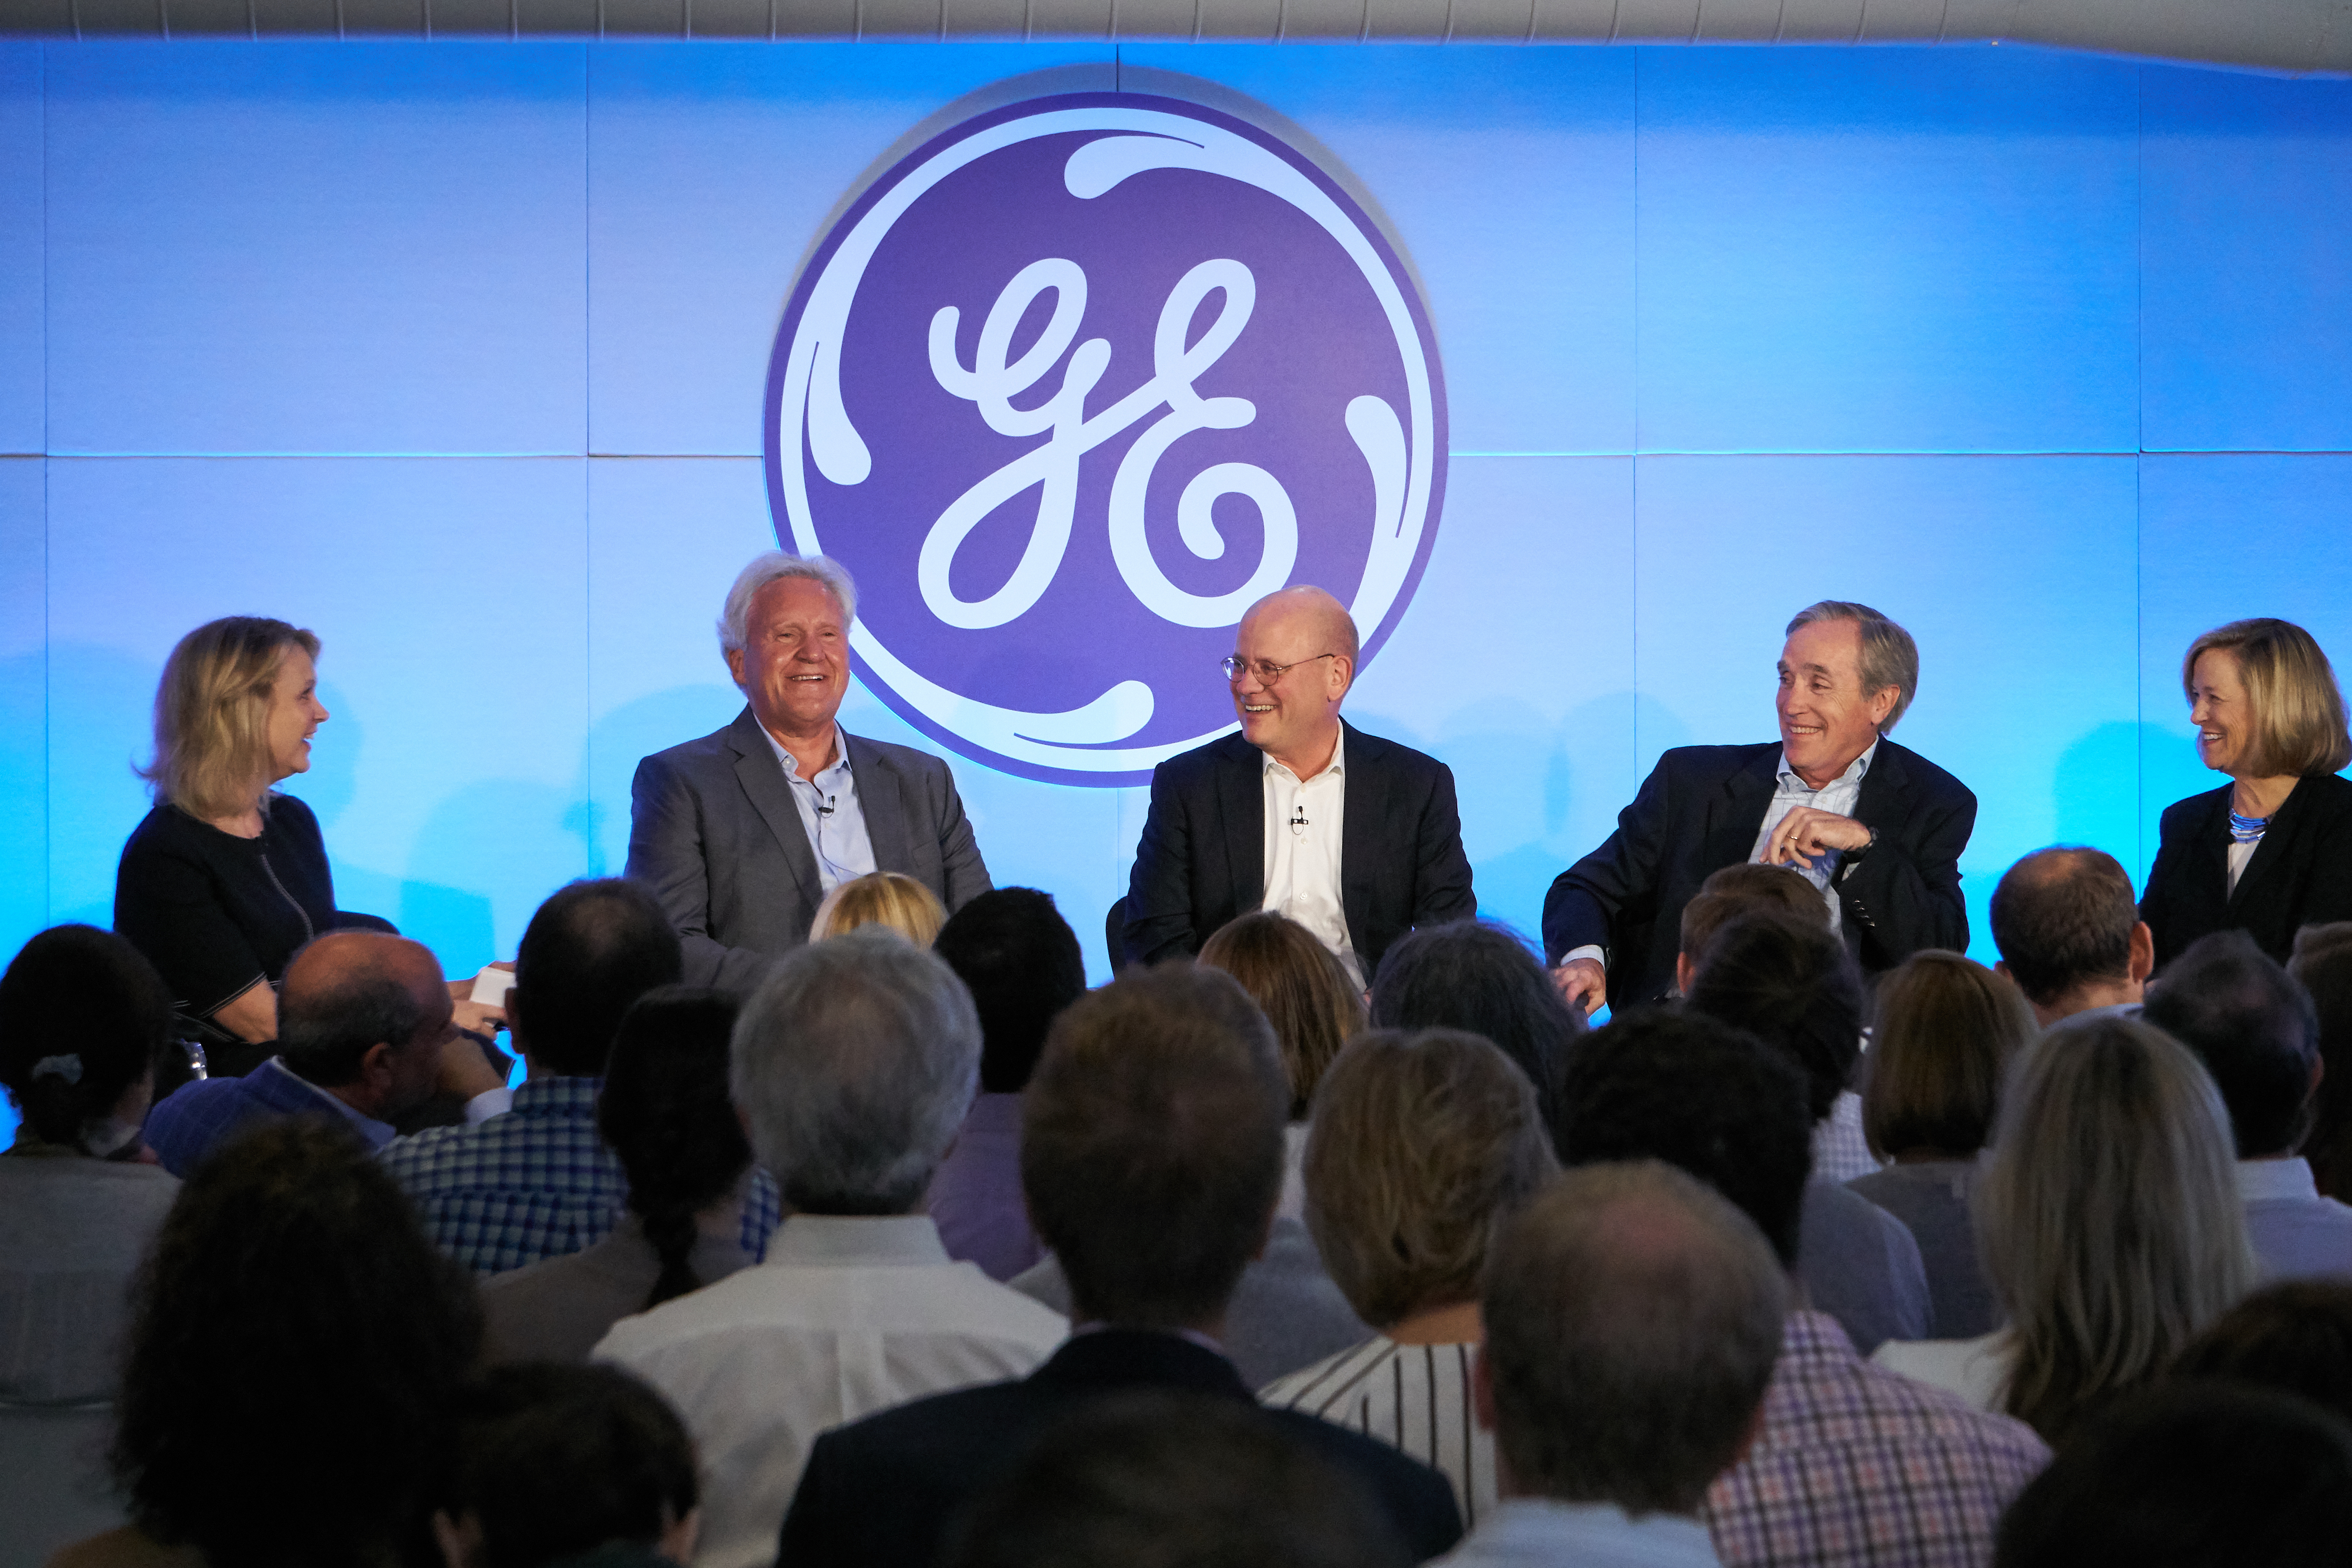 Boston, MA: Deirdre Latour, GE chief communications officer, Jeff Immelt, GE chairman and CEO, John Flannery, CEO at GE Healthcare, Jack Brennan, Lead Independent Director, GE Board of Directors and Susan Peters, GE senior vice president, HR, during an all employee broadcast announcing Jeff Immelt's retirement as CEO and John Flannery as his successor effective August 1, 2017. (Photo:GE)